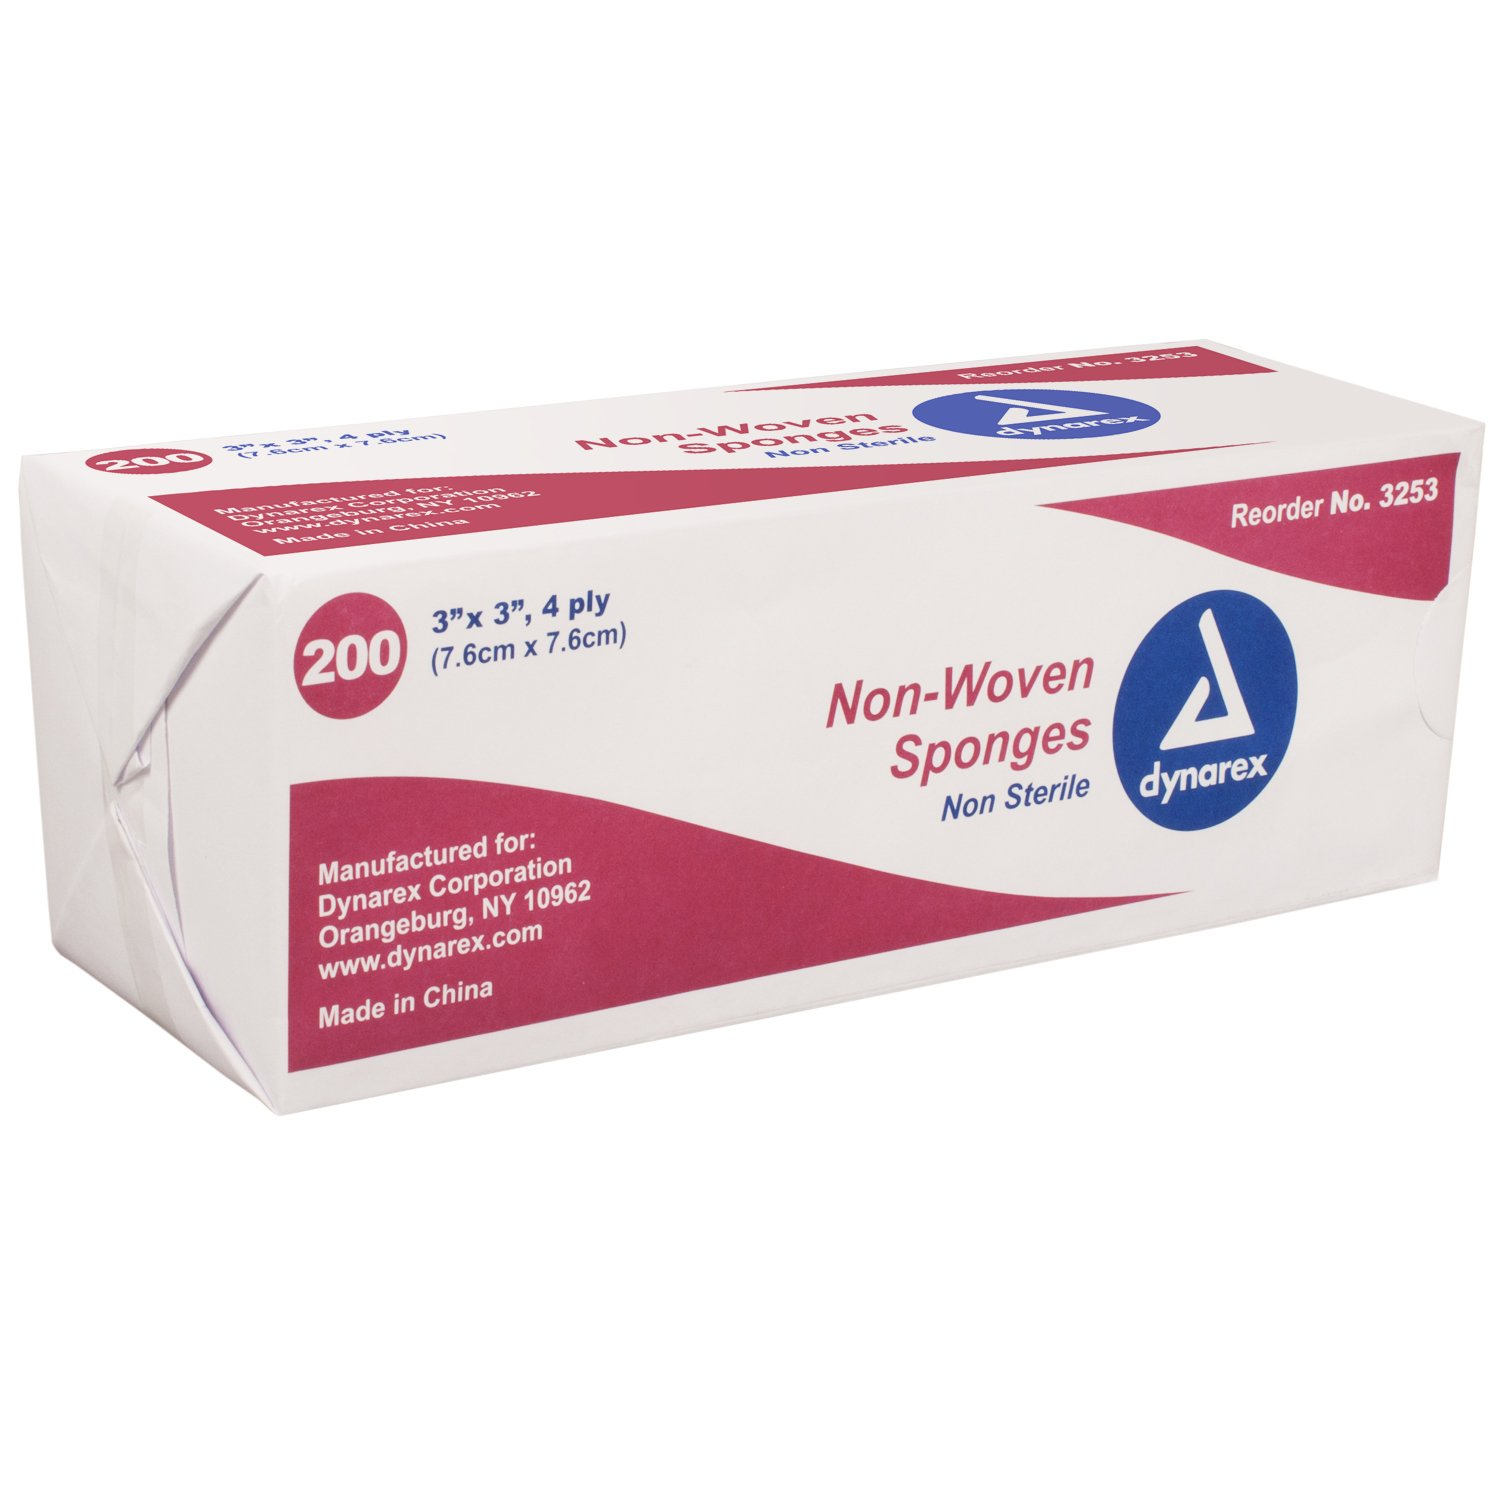 Gauze Non- Woven Sponges Non-Sterile 67% OFF of fixed price - 200 in Ply Branded goods 4 3 X